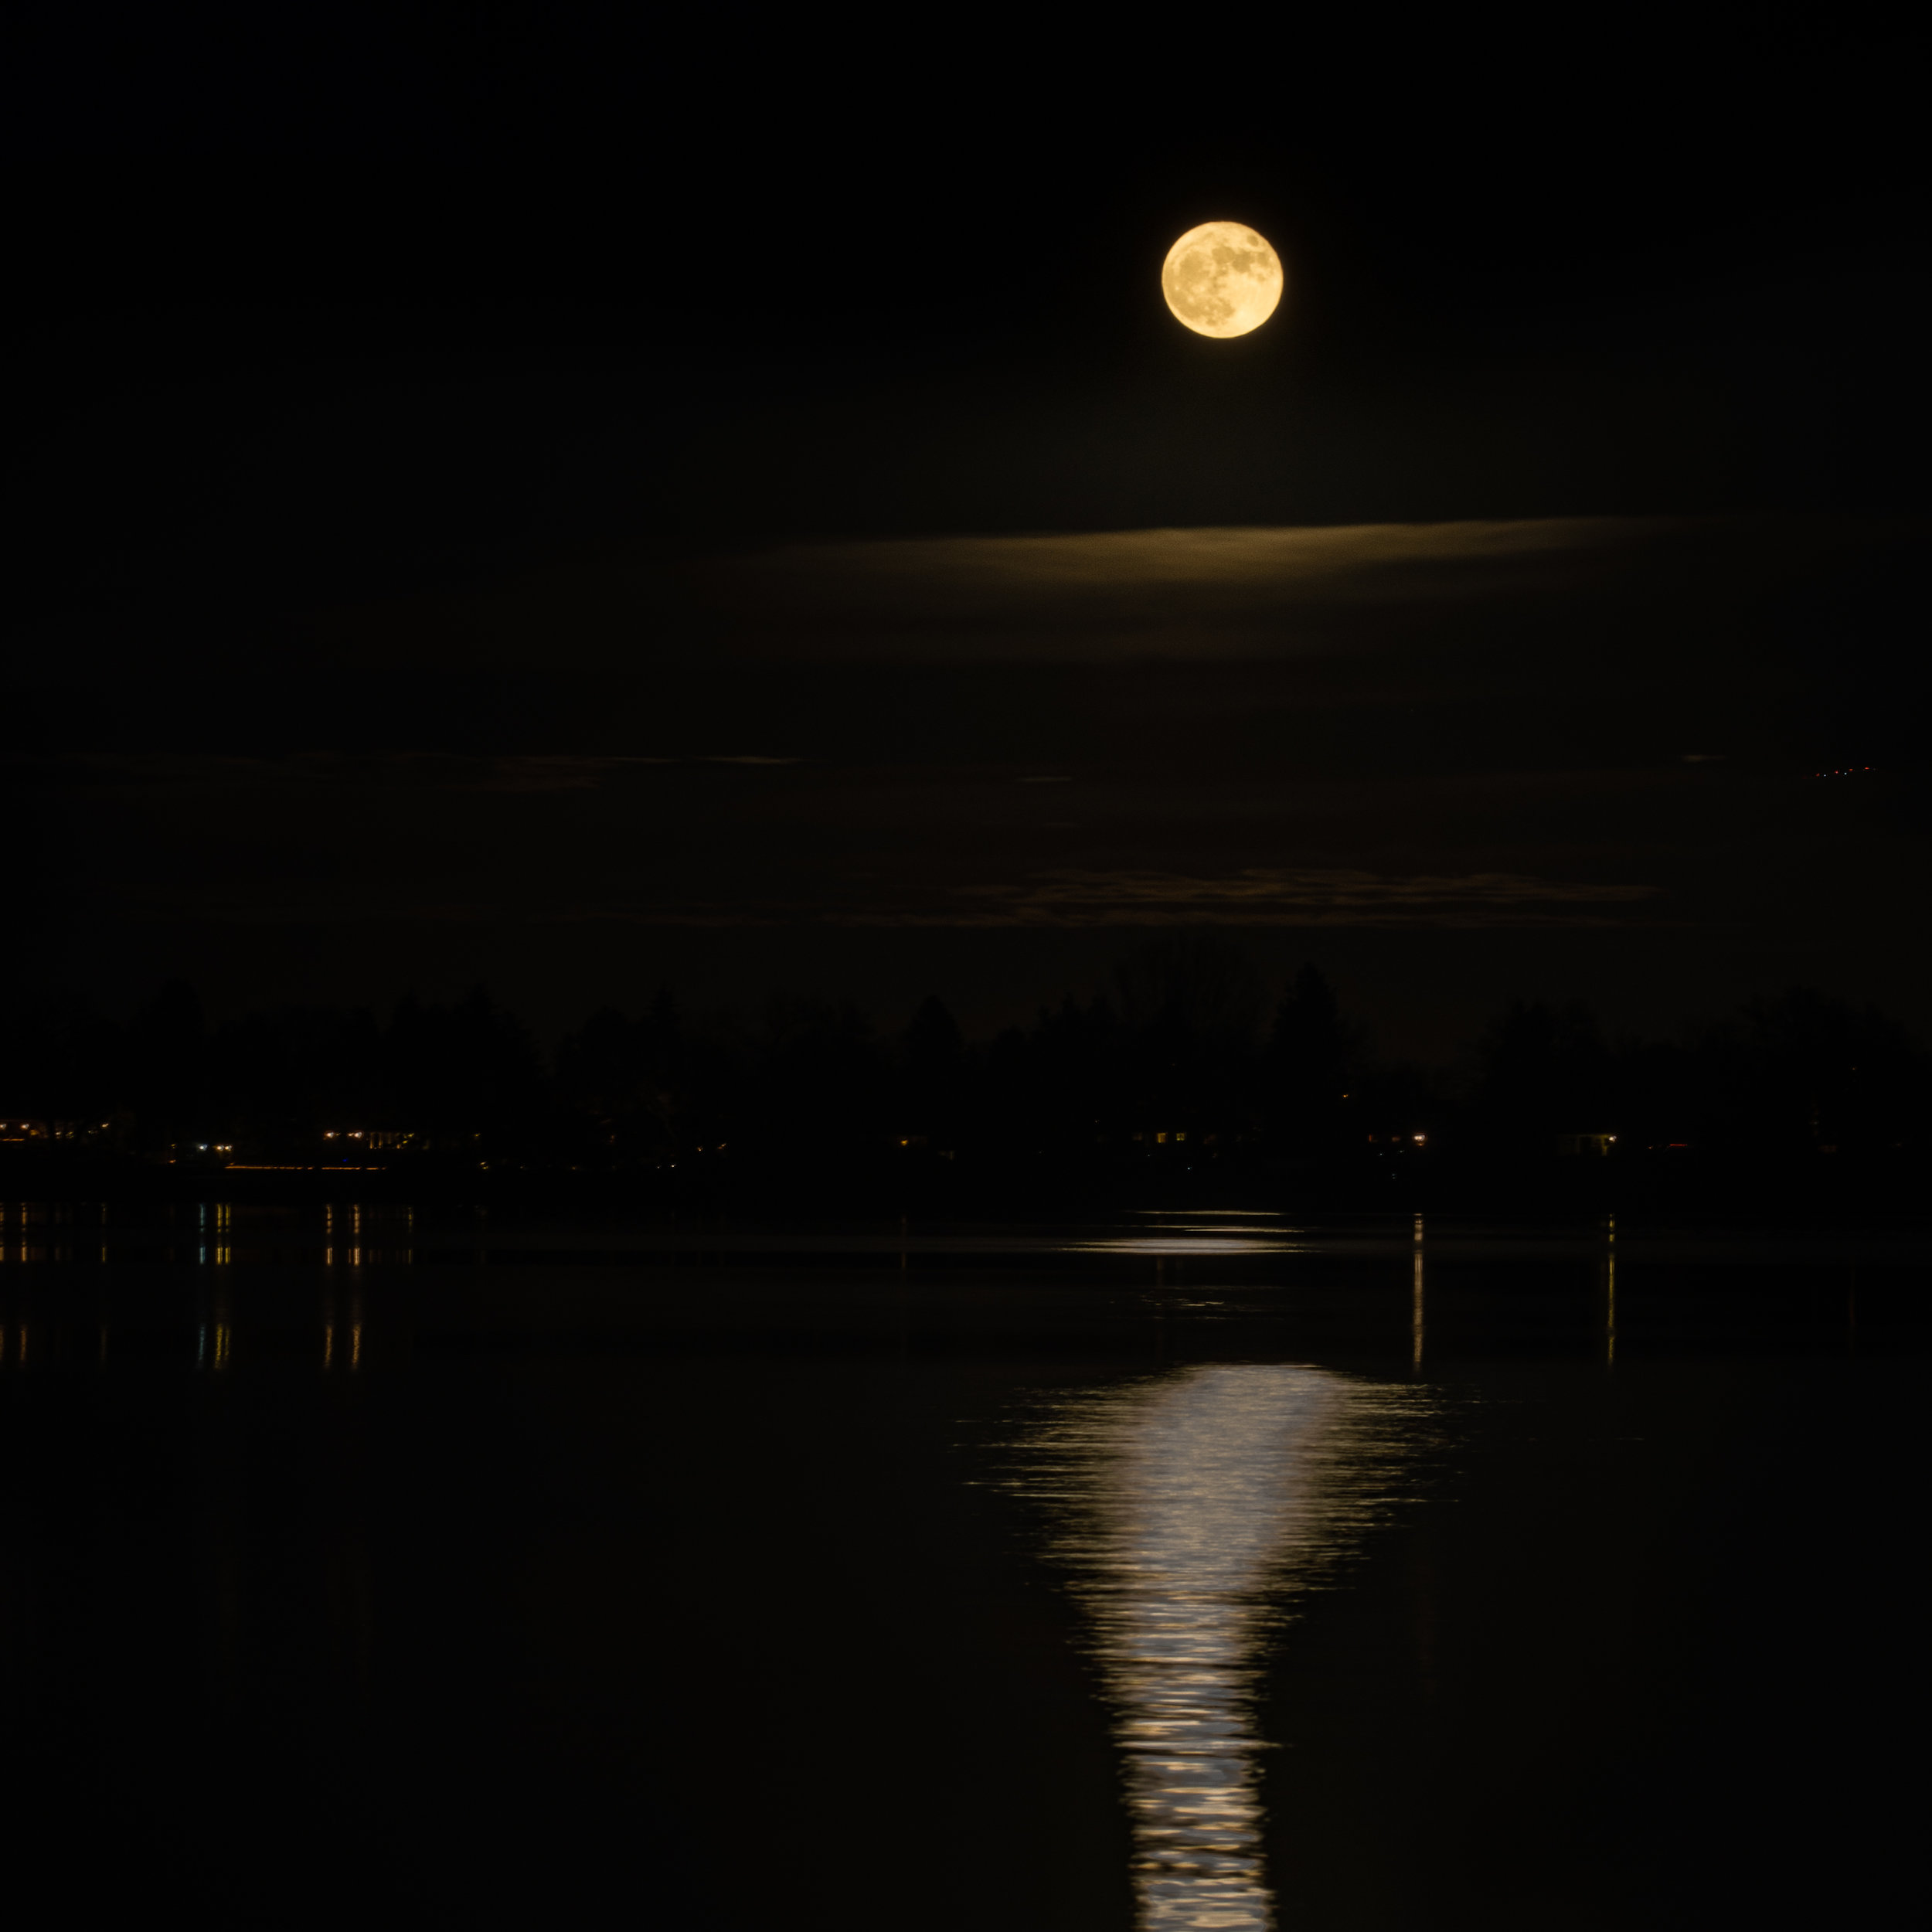 20161114-Super Moon-PMG_4426&7 - Merged.JPG